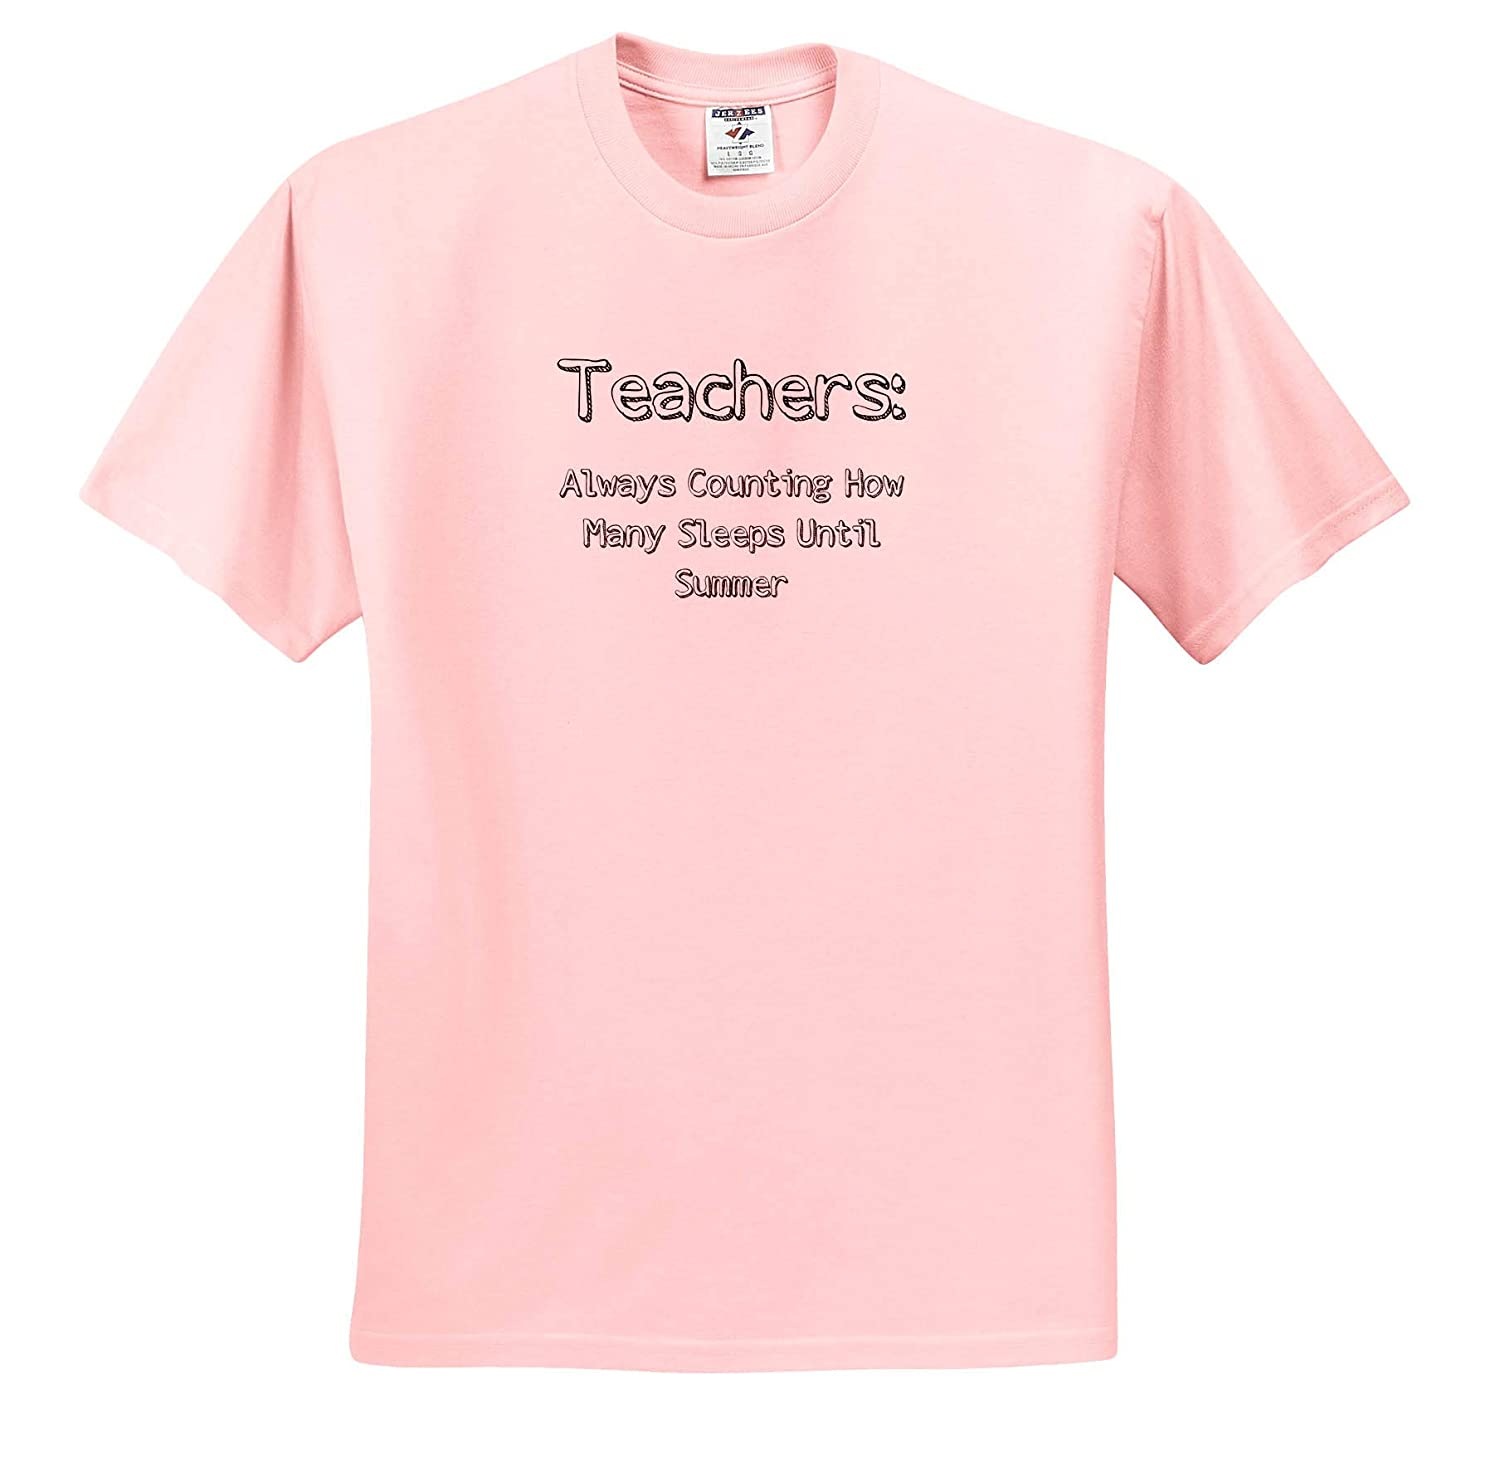 3dRose Carrie Merchant Image Image of Teachers Always Counting How Many Sleeps Until Summer Adult T-Shirt XL ts/_309316